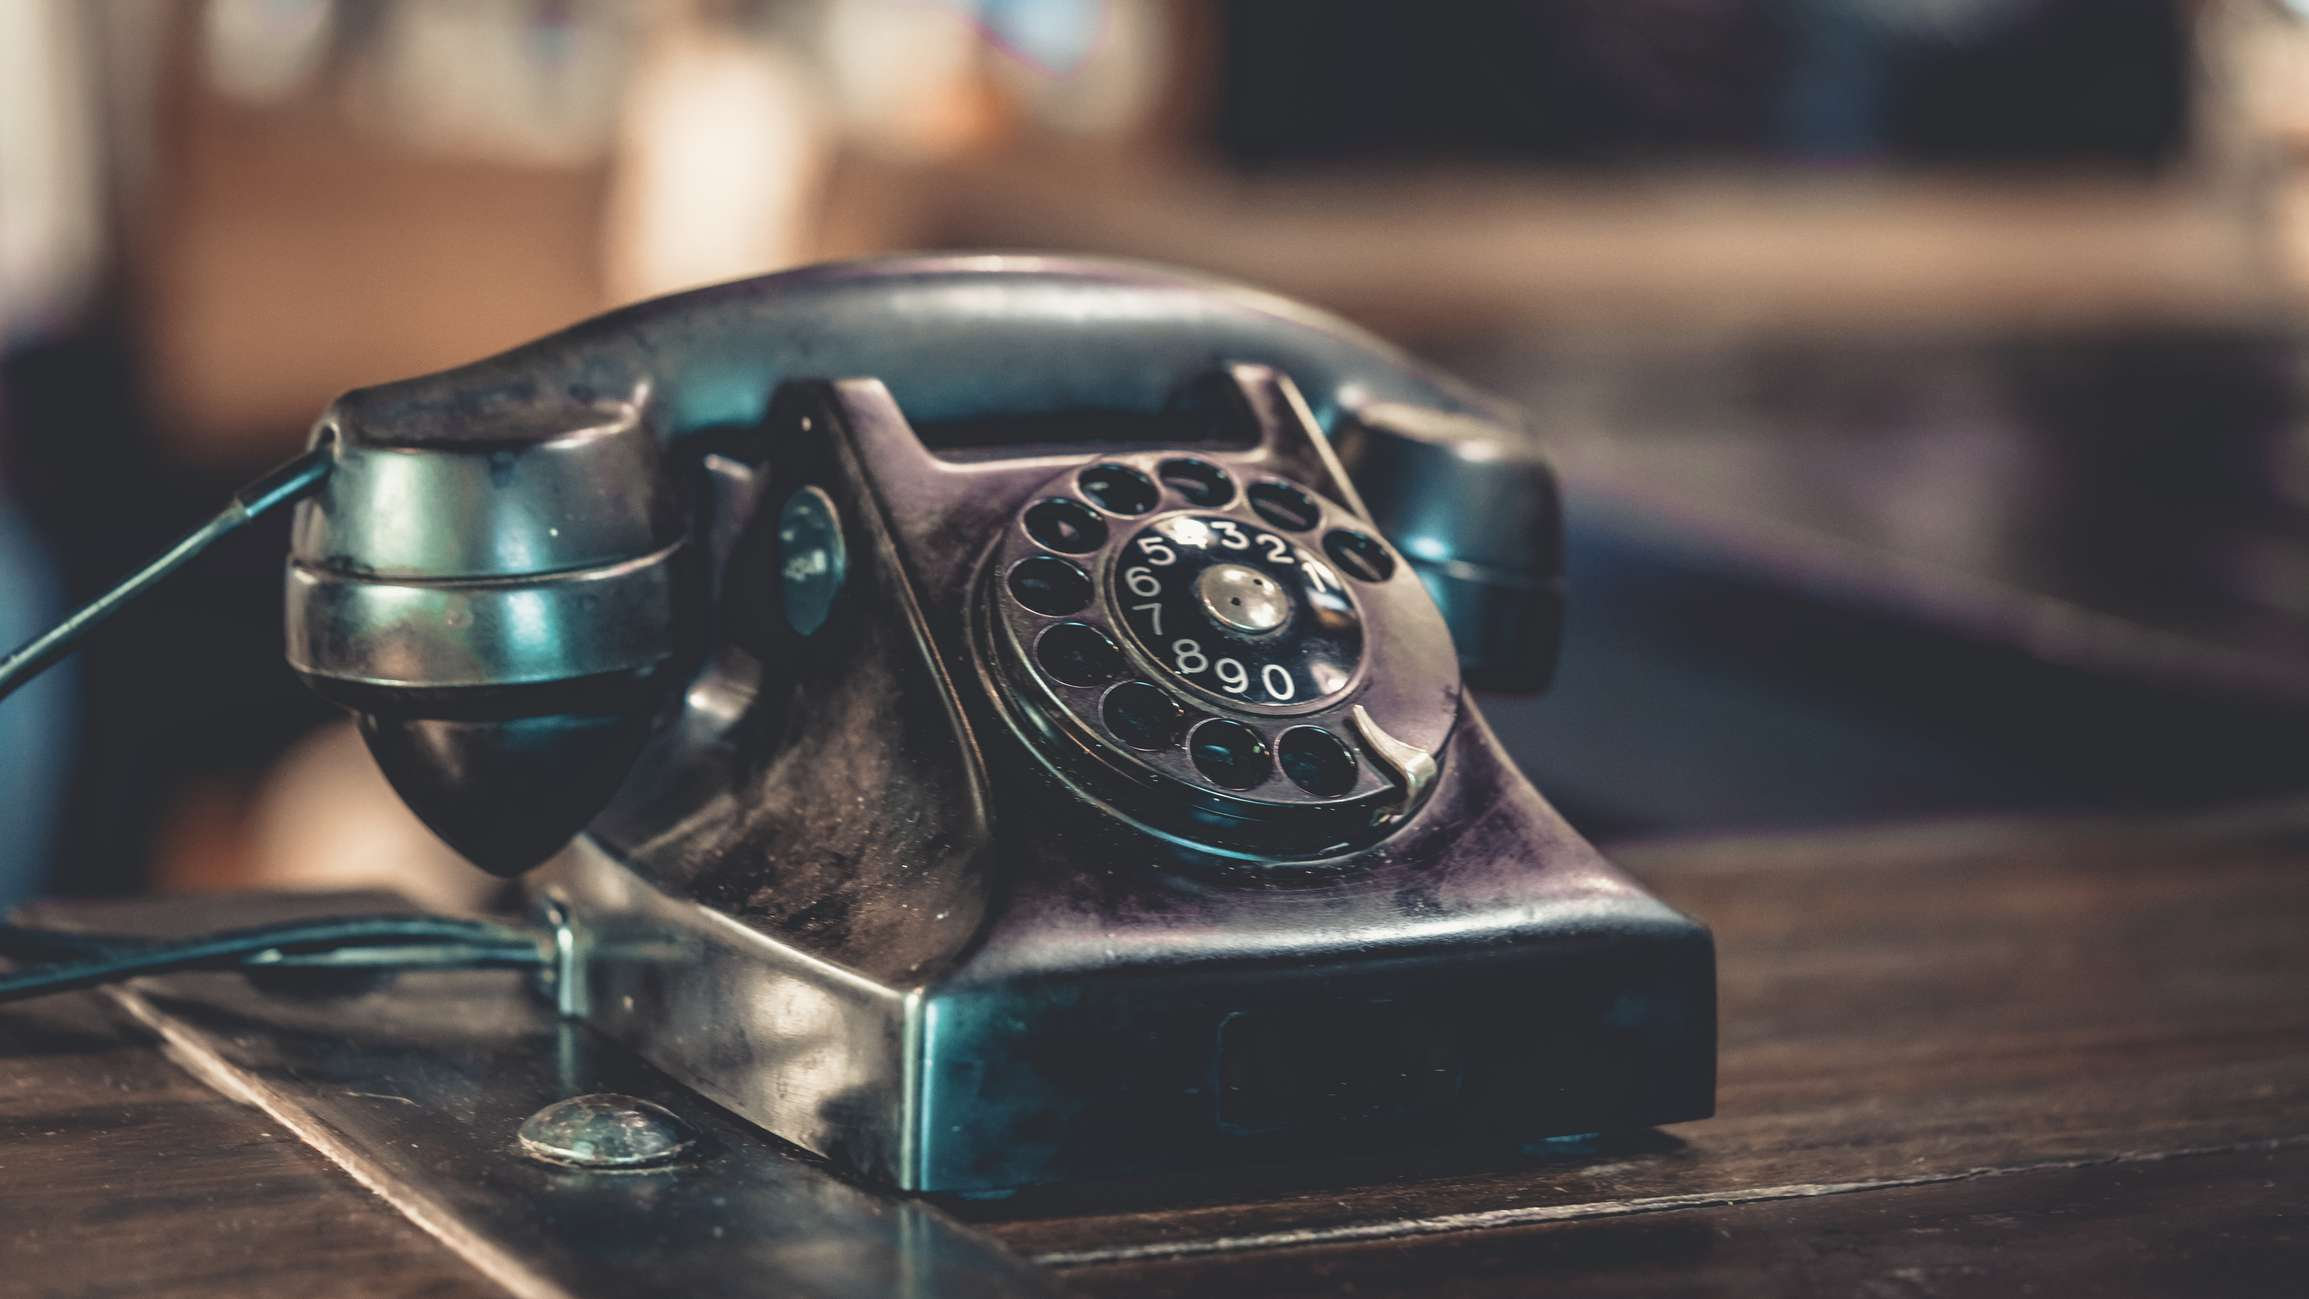 Traditional landline phone which has become a thing of the past sitting on a desk.